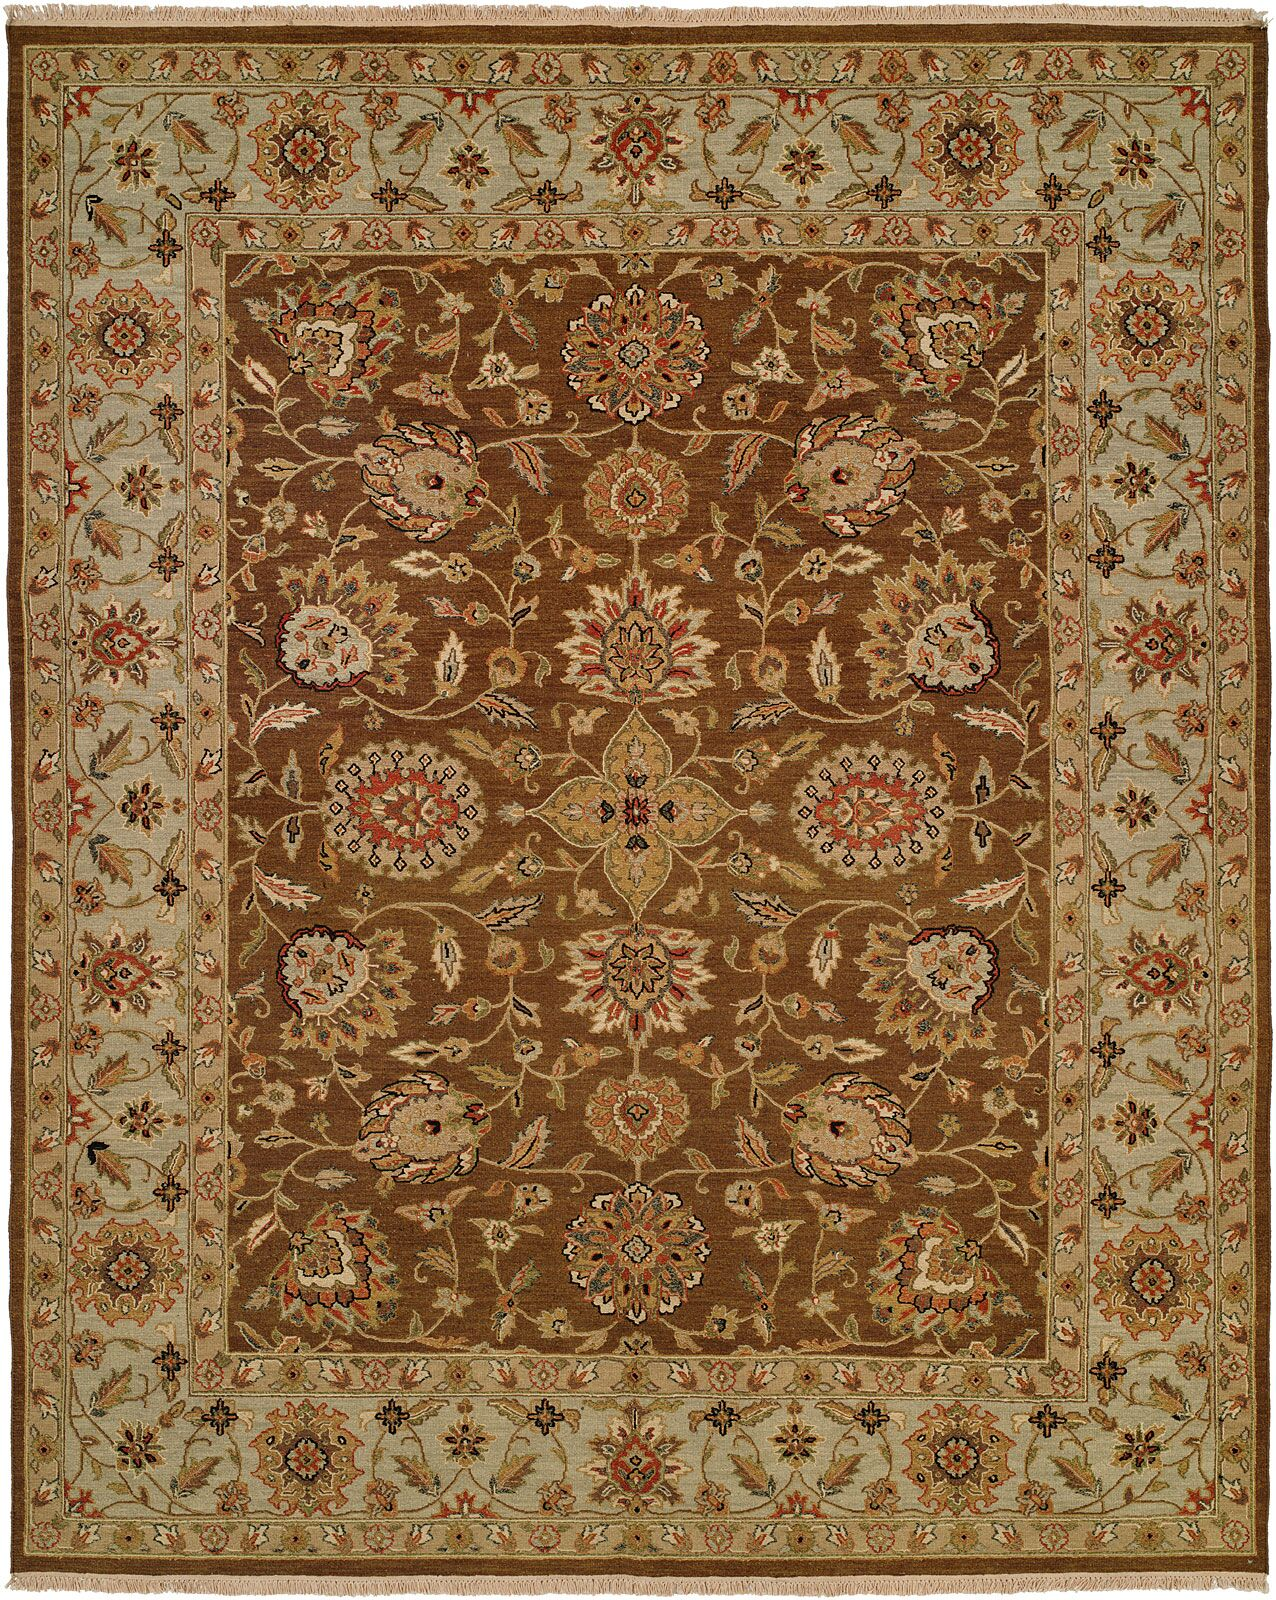 Talcahuano Hand-Woven Brown Area Rug Rug Size: Rectangle 6' x 9'